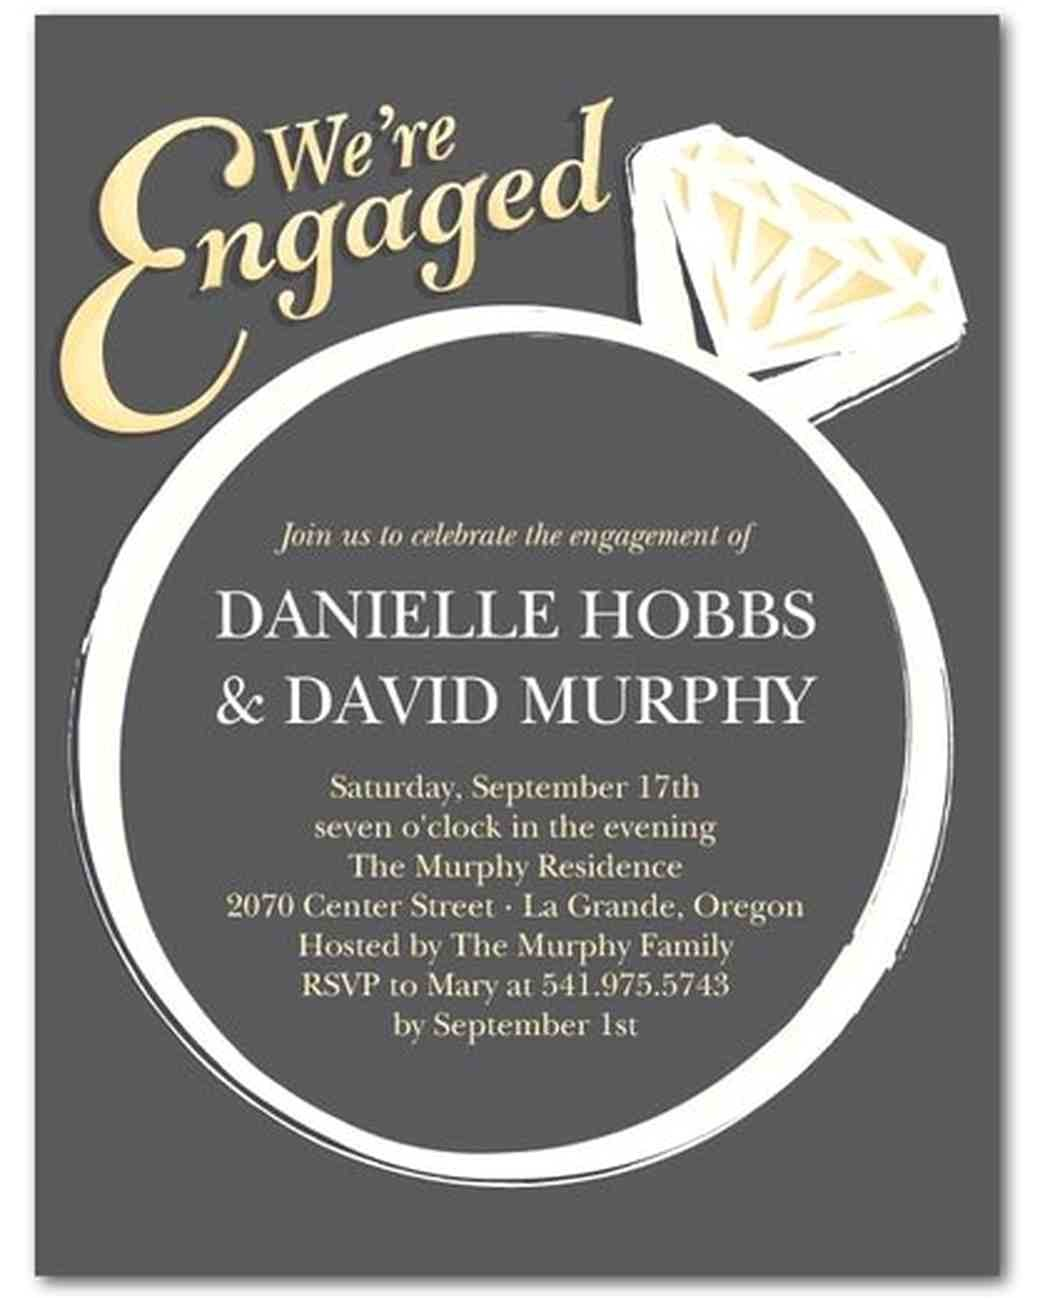 Evite Engagement Party Invitations 15 Engagement Party Invitations Martha Stewart Weddings